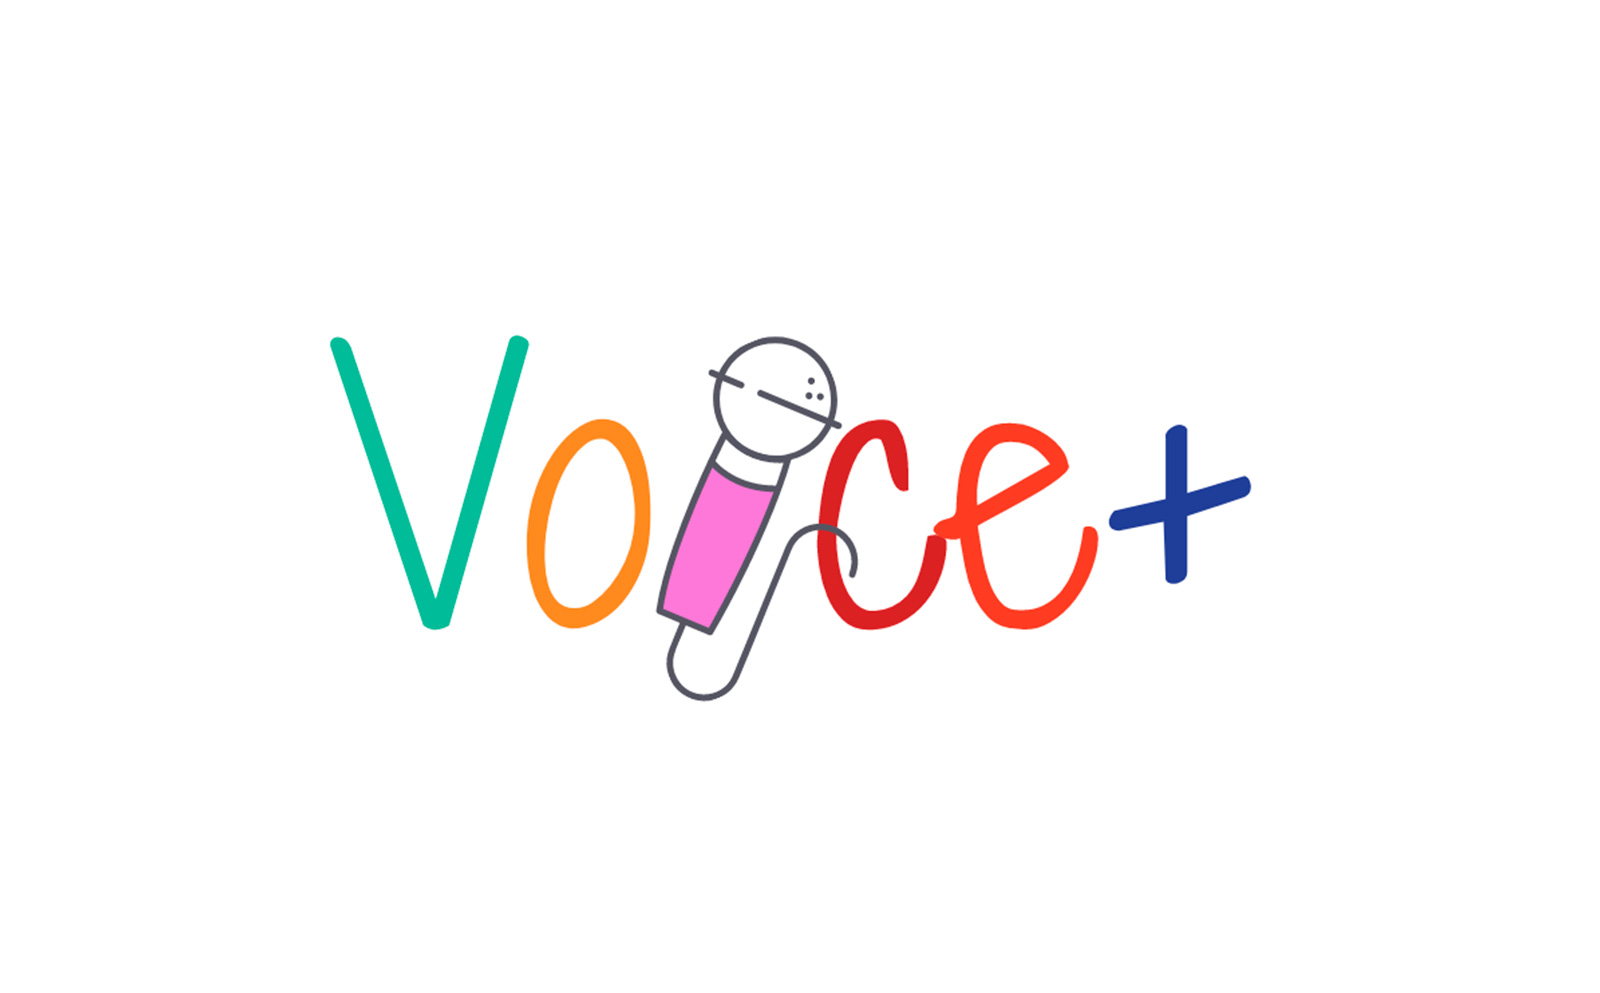 Voice plus logo